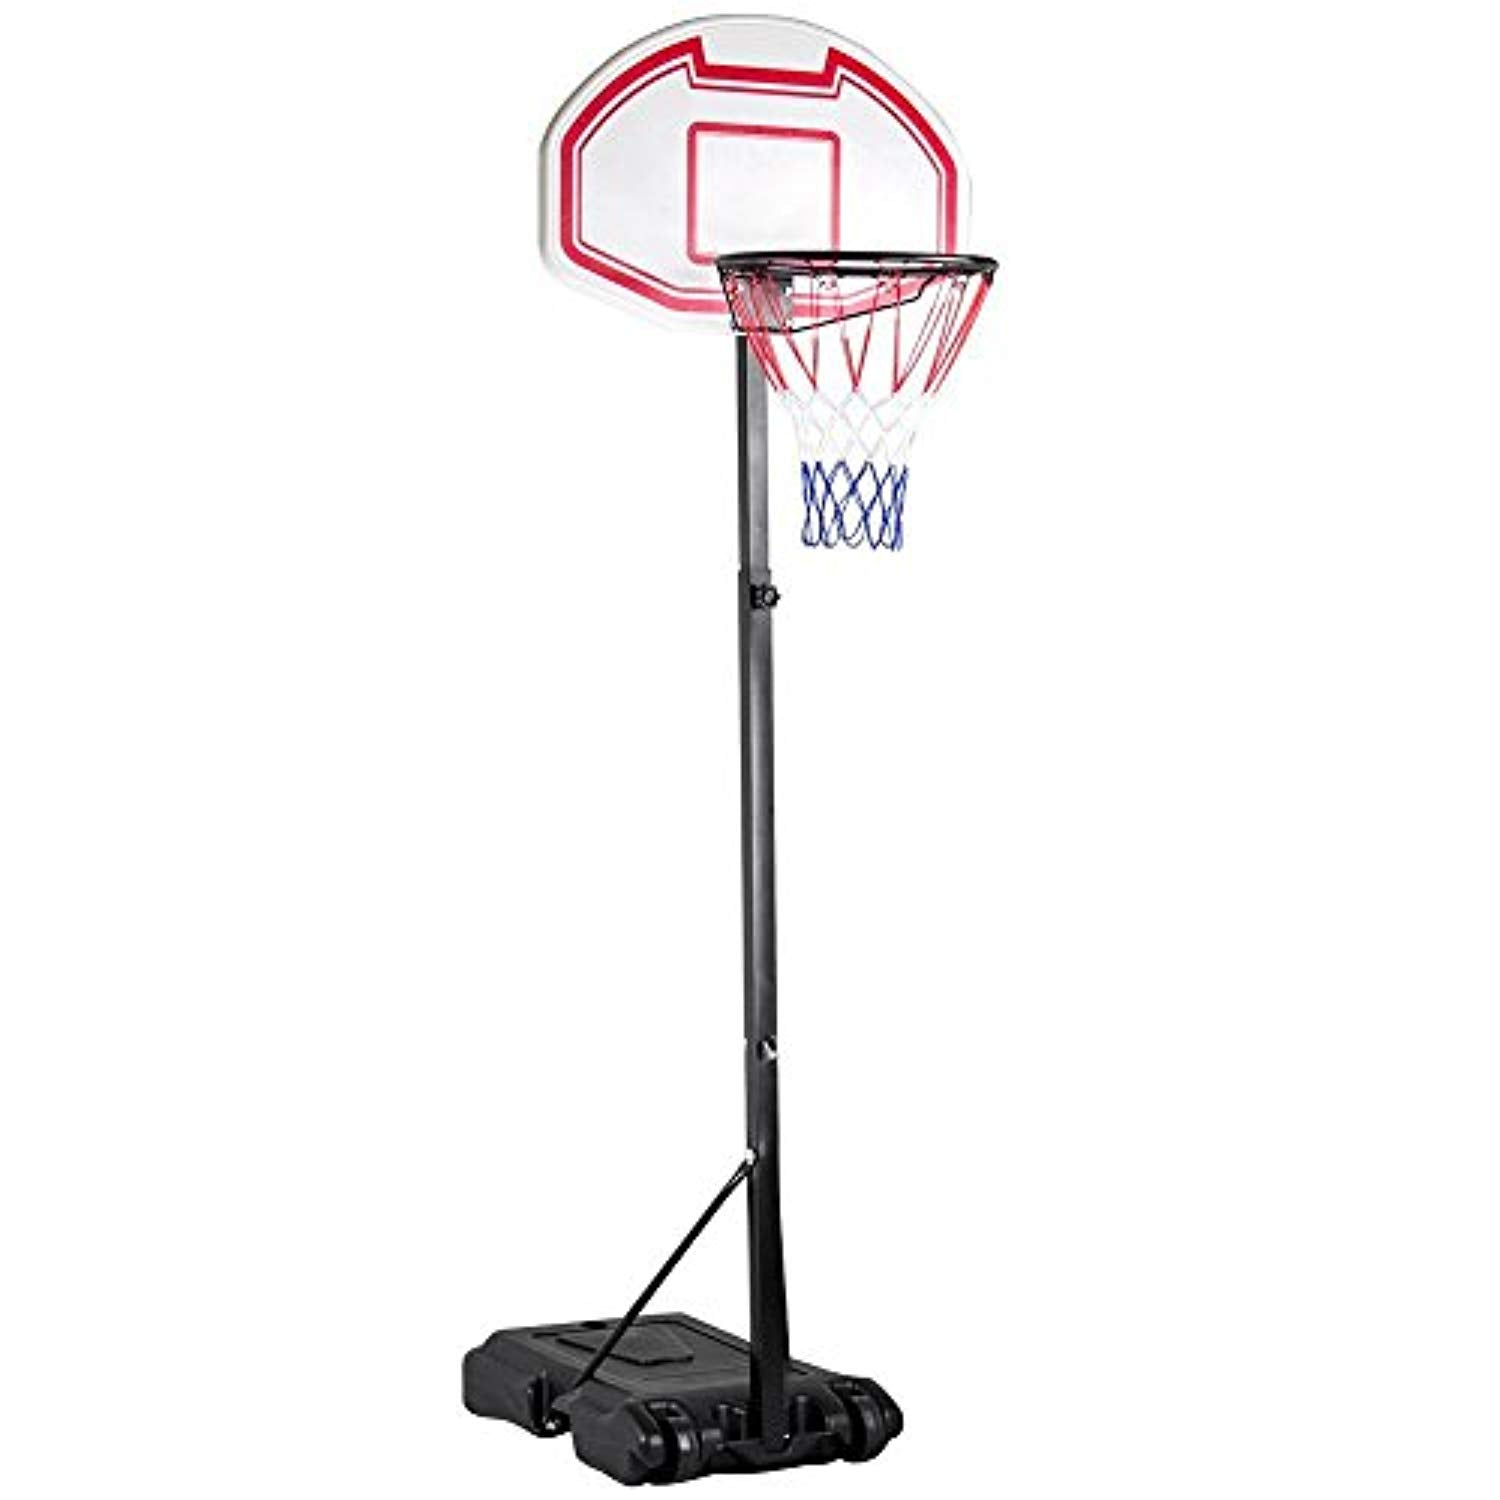 Indoor Outdoor Basketball stand Backboard withWheels